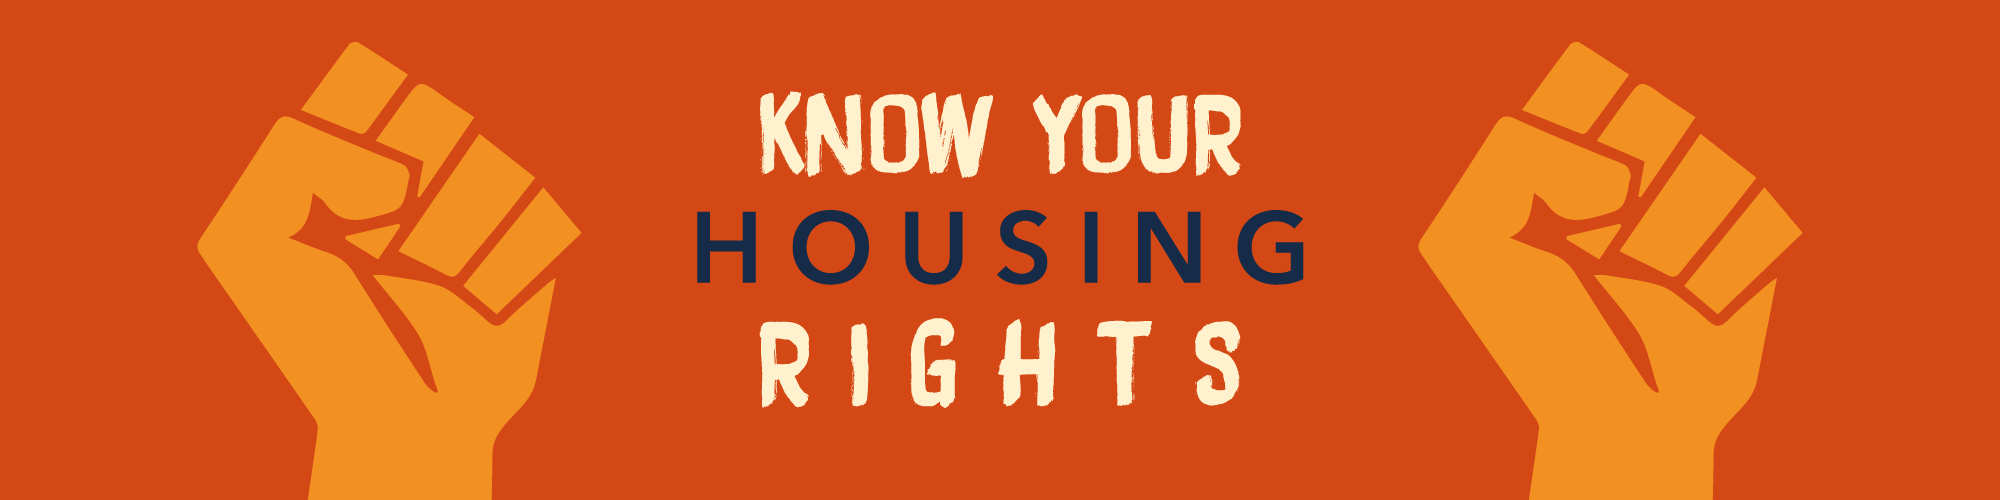 Know Your Housing Rights